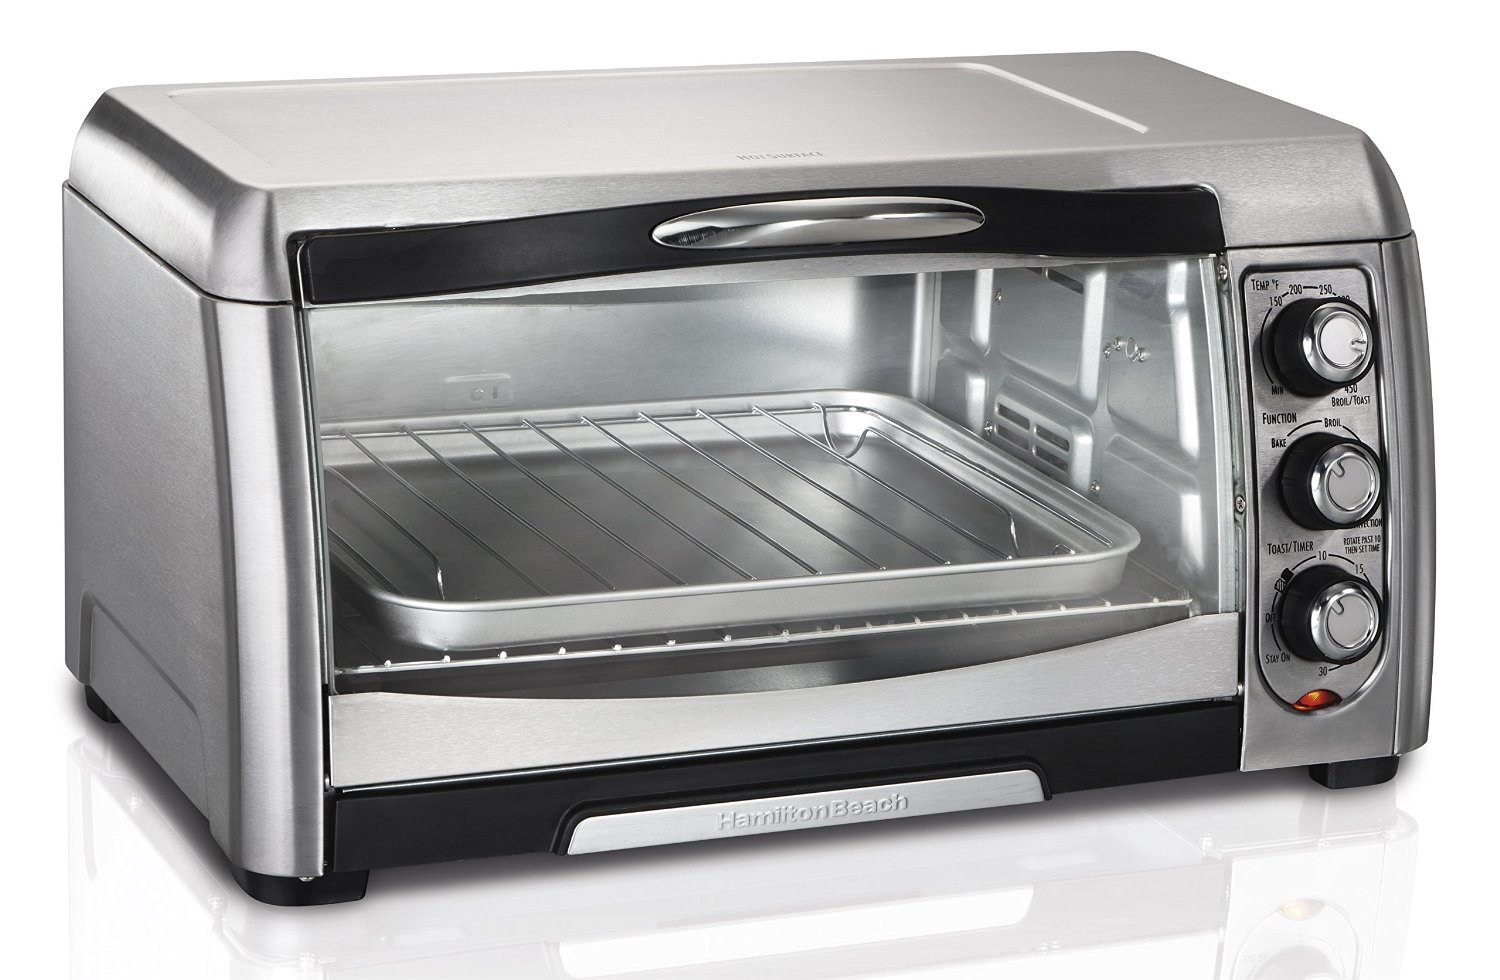 Hamilton beach 31333 review should you buy hamilton beach 31333 toaster oven eventelaan Images